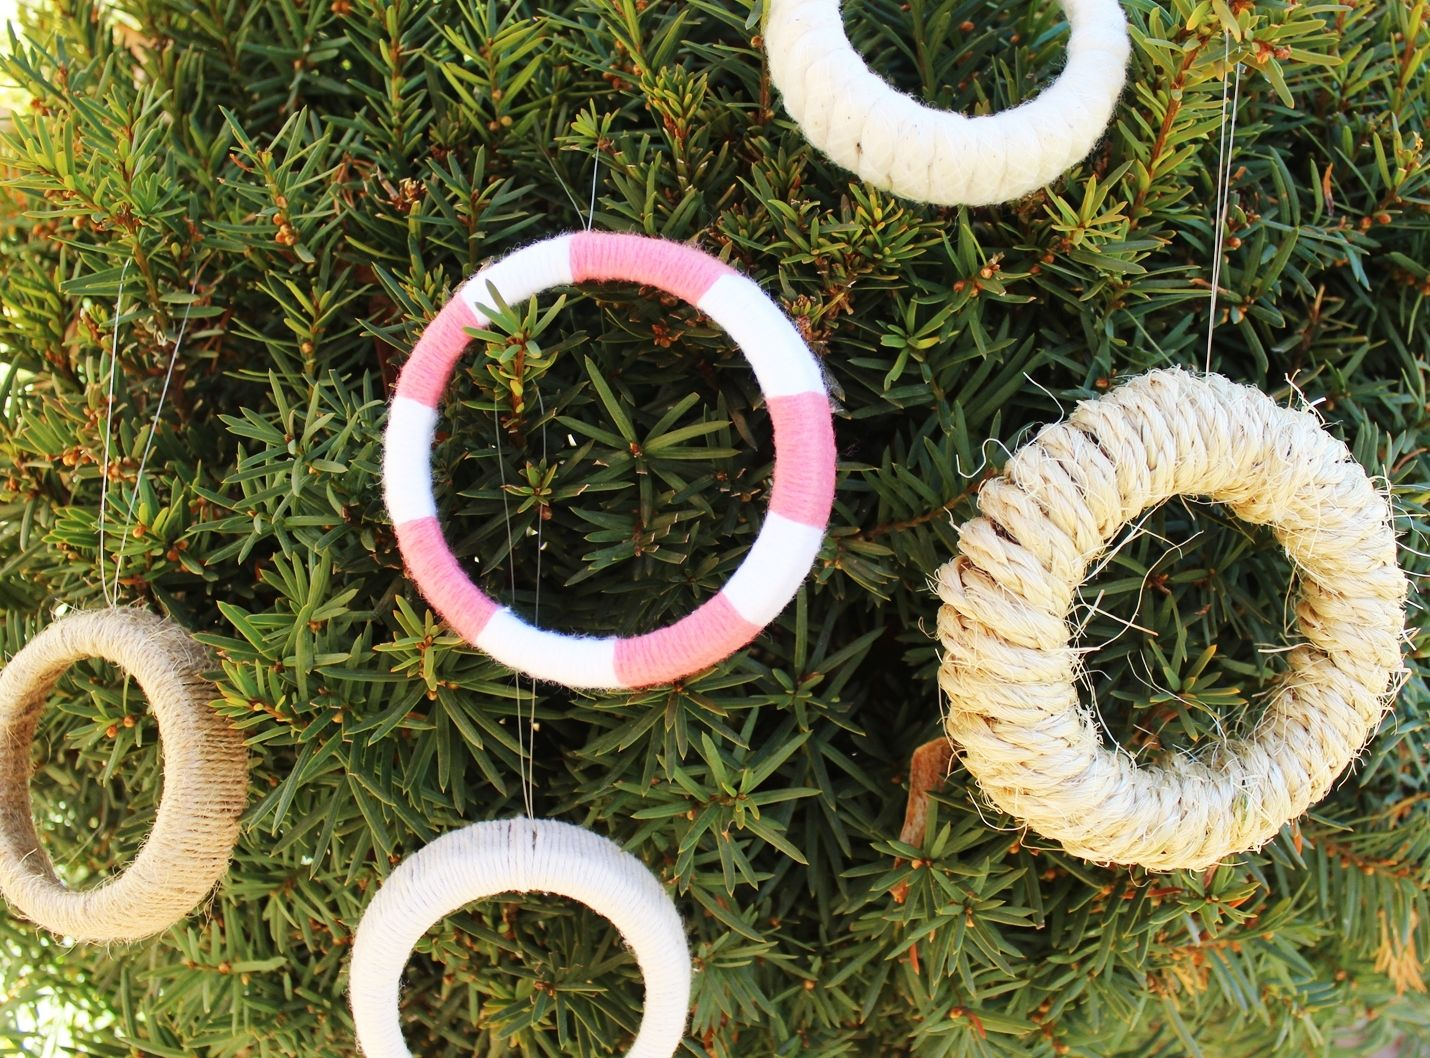 DIY Mason Jar Lid Wreaths - DIY project fun